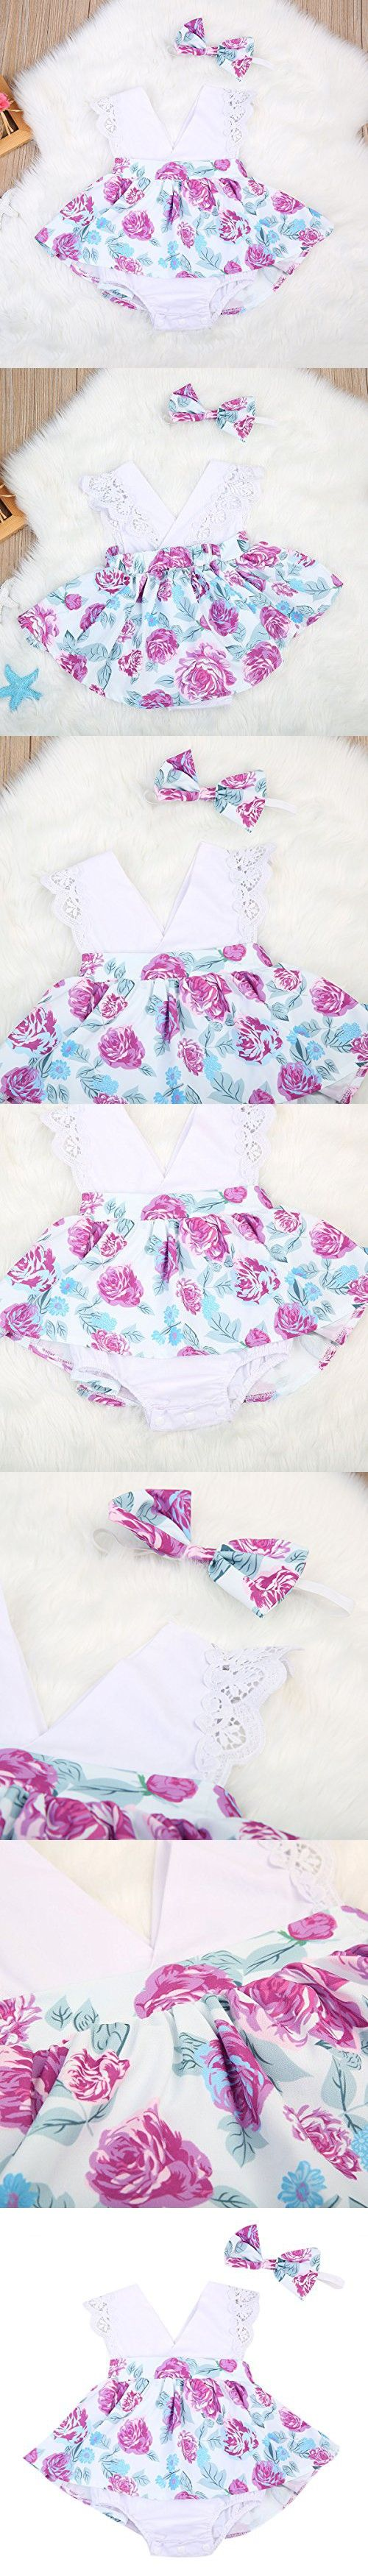 Baby Girl Clothes Floral Cotton Romper Skirt Bodysuit Jumpsuit Outfit Dress With Headband (6~12months, White)